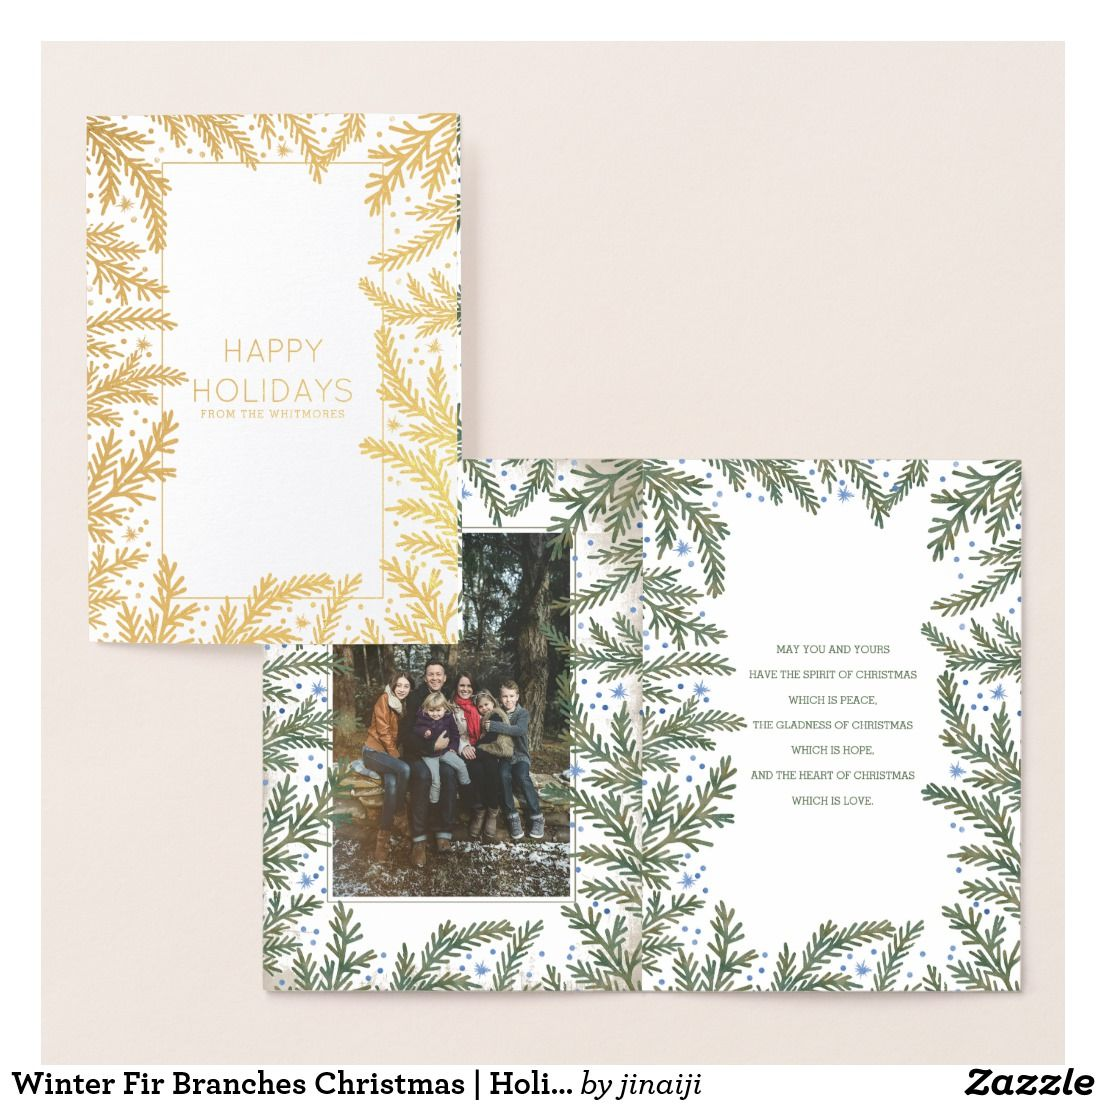 Winter Fir Branches Christmas Holiday Photo Foil Card Photo